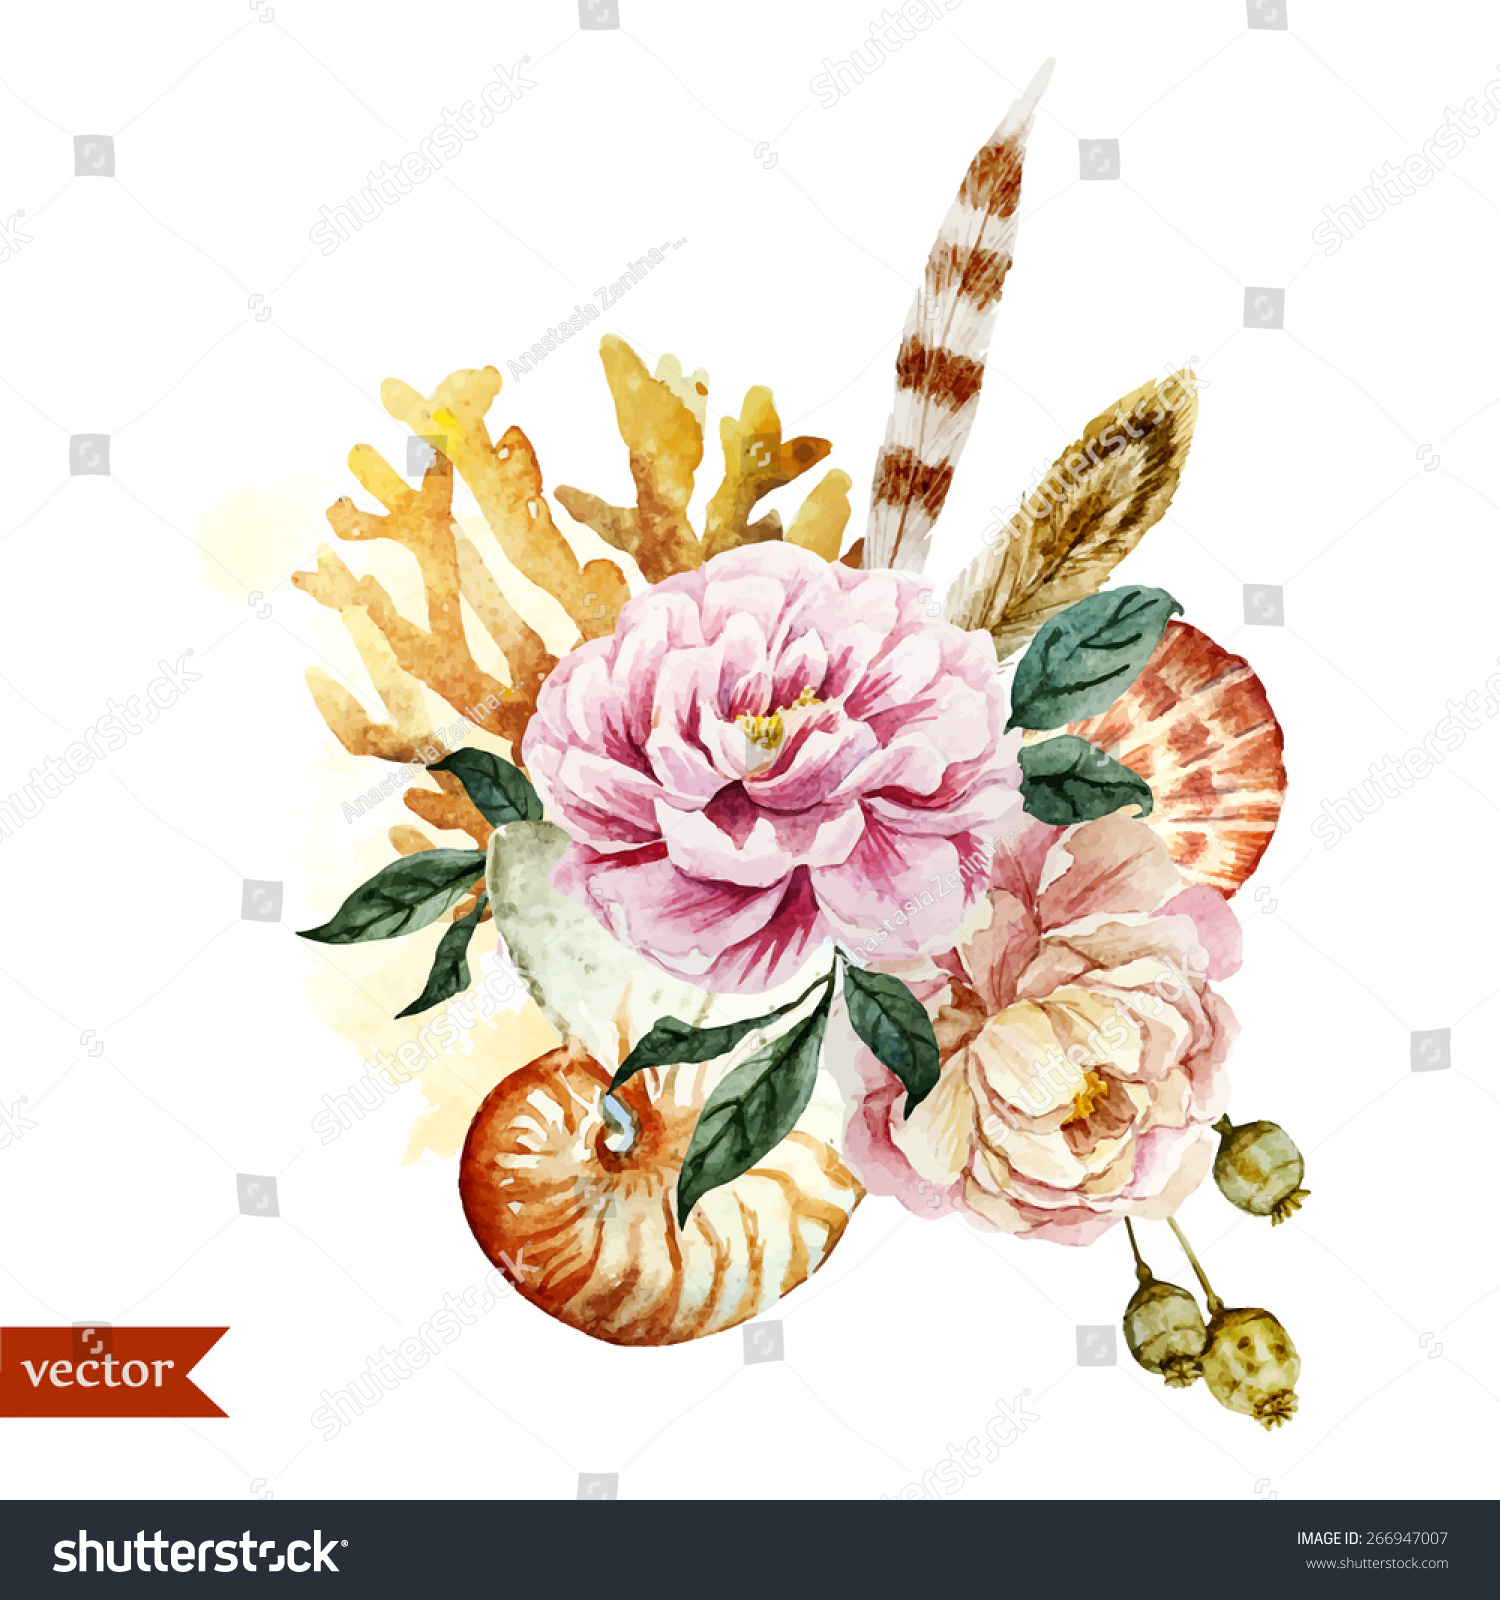 Watercolor Vintage Object Flowers Sea Shells Stock Vector Royalty